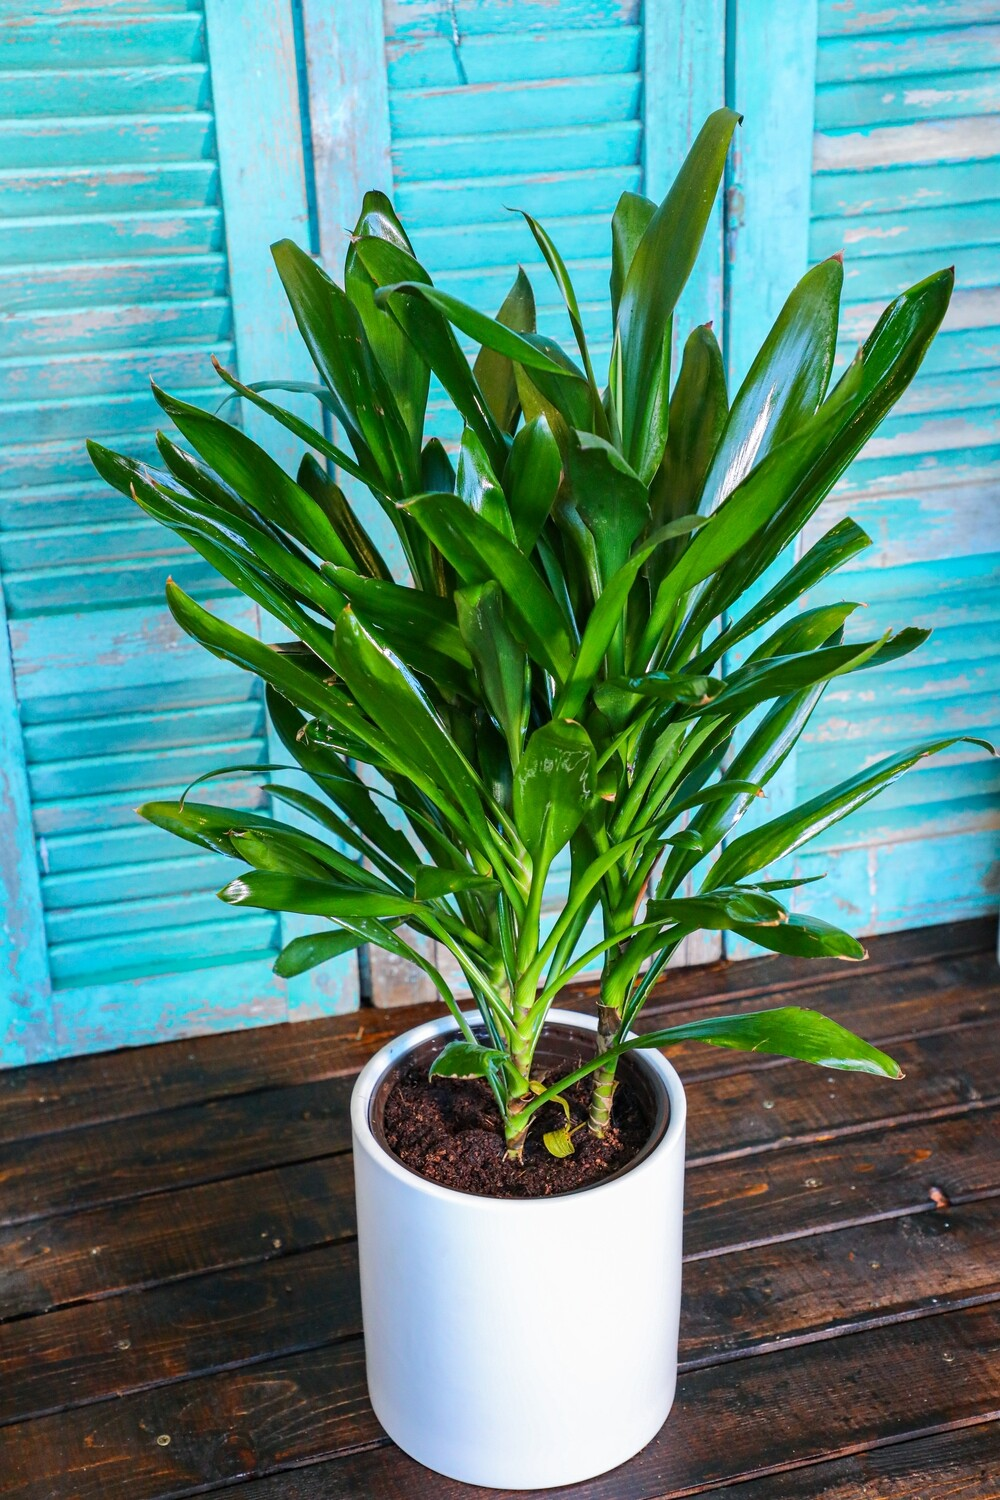 Cordyline fruticosa glauca (Plant) - Nature by Marc Beyrouthy